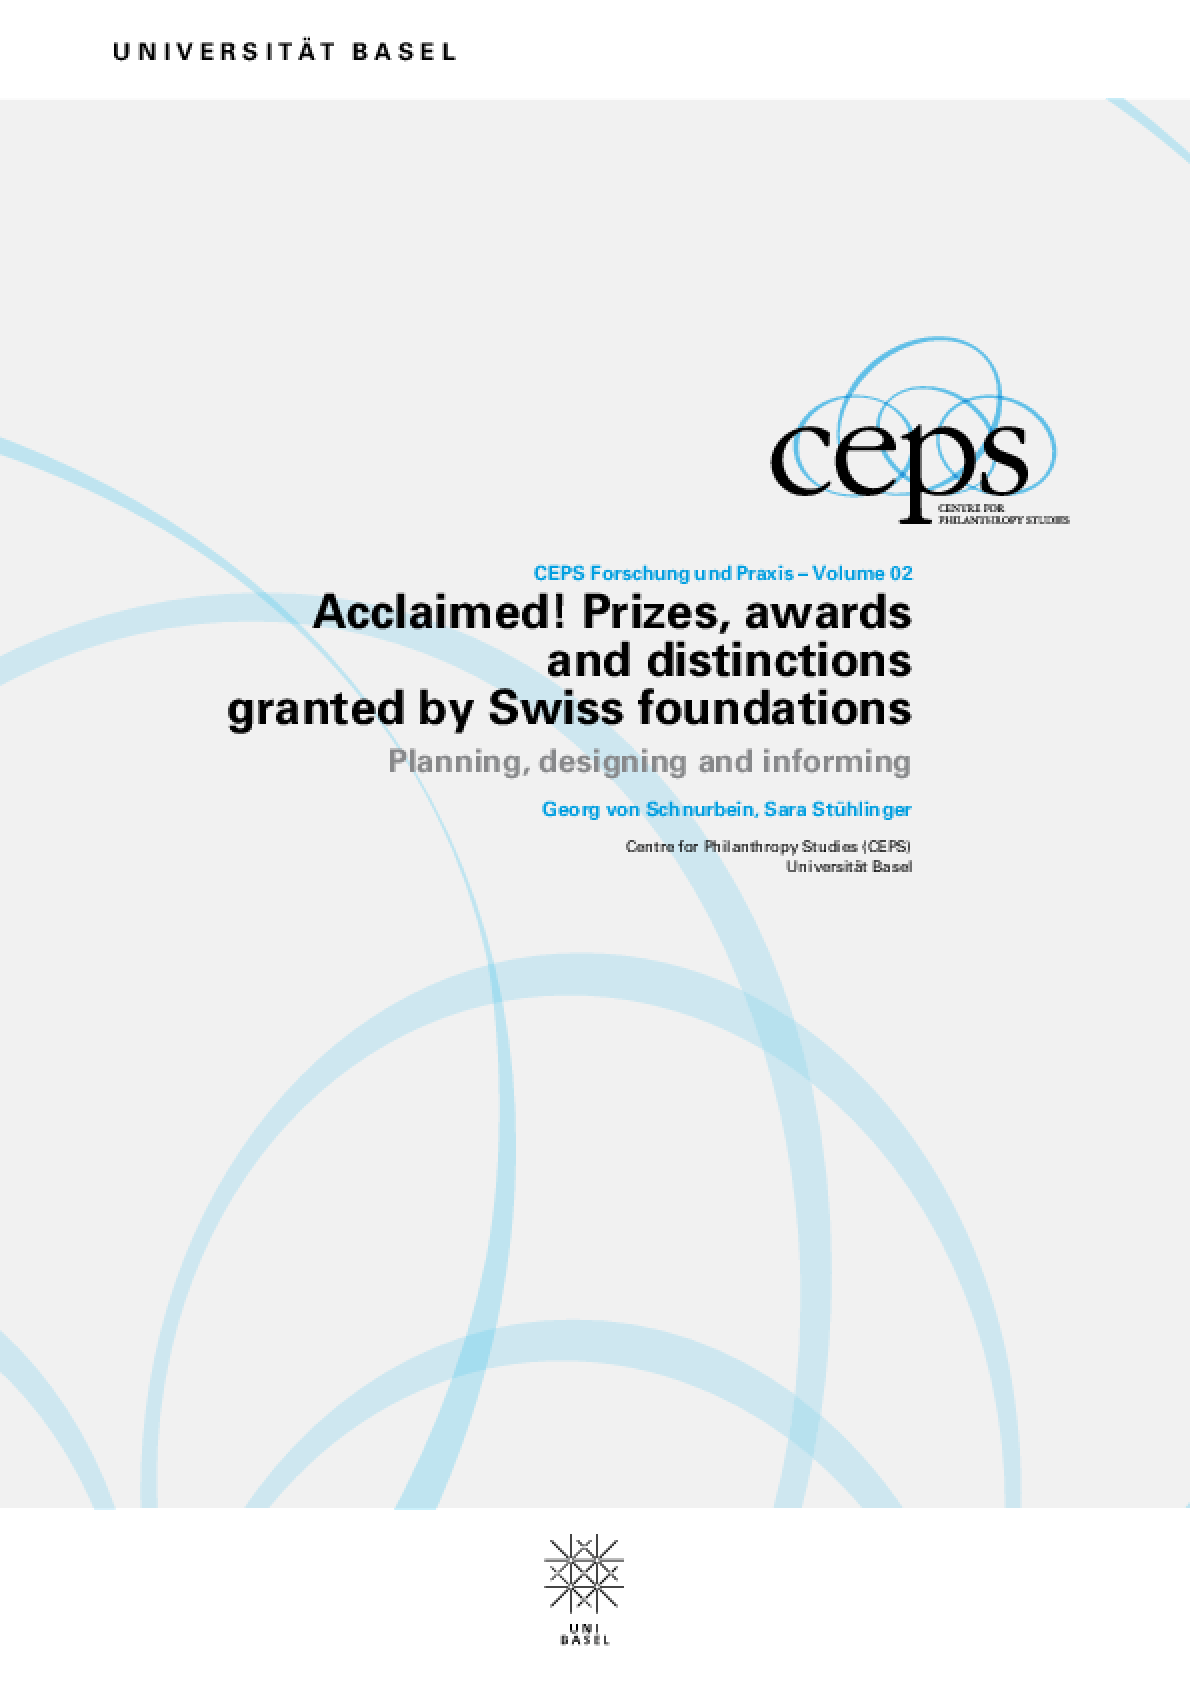 Acclaimed! Prizes, Awards and Distinctions Granted By Swiss Foundations: Planning, Designing and Informing